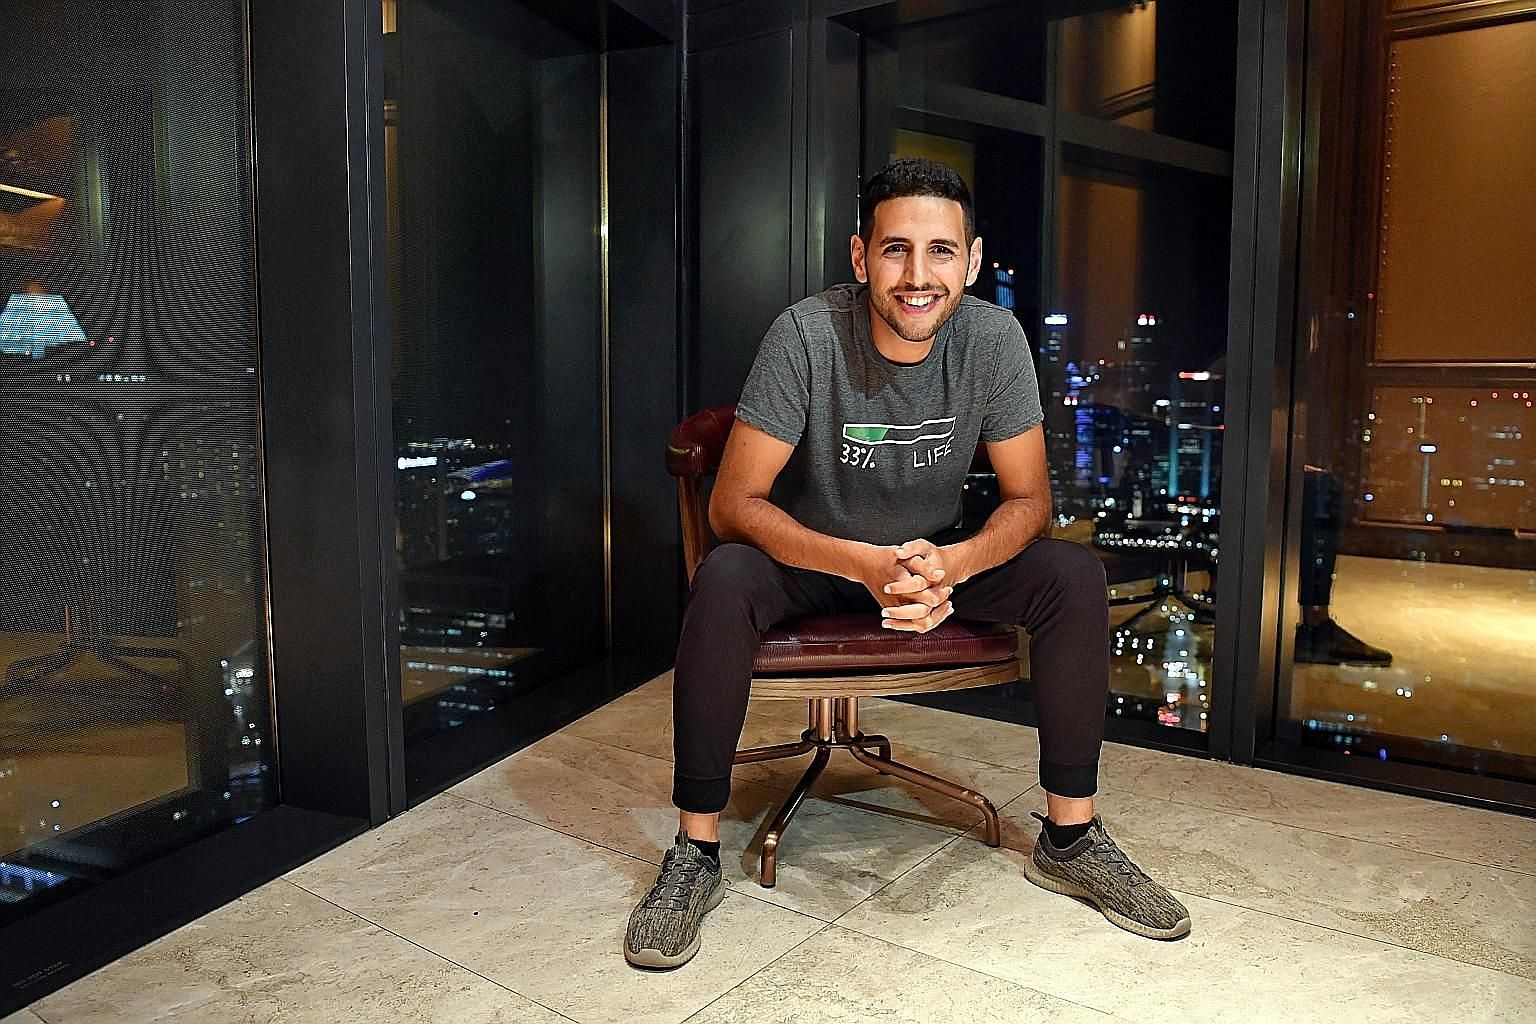 Palestinian-Israeli Nuseir Yassin grew up in the north of Israel, got a scholarship to Harvard and became a software engineer in New York City before leaving the corporate life to travel. He has set a target of posting one video a day for 1,000 days